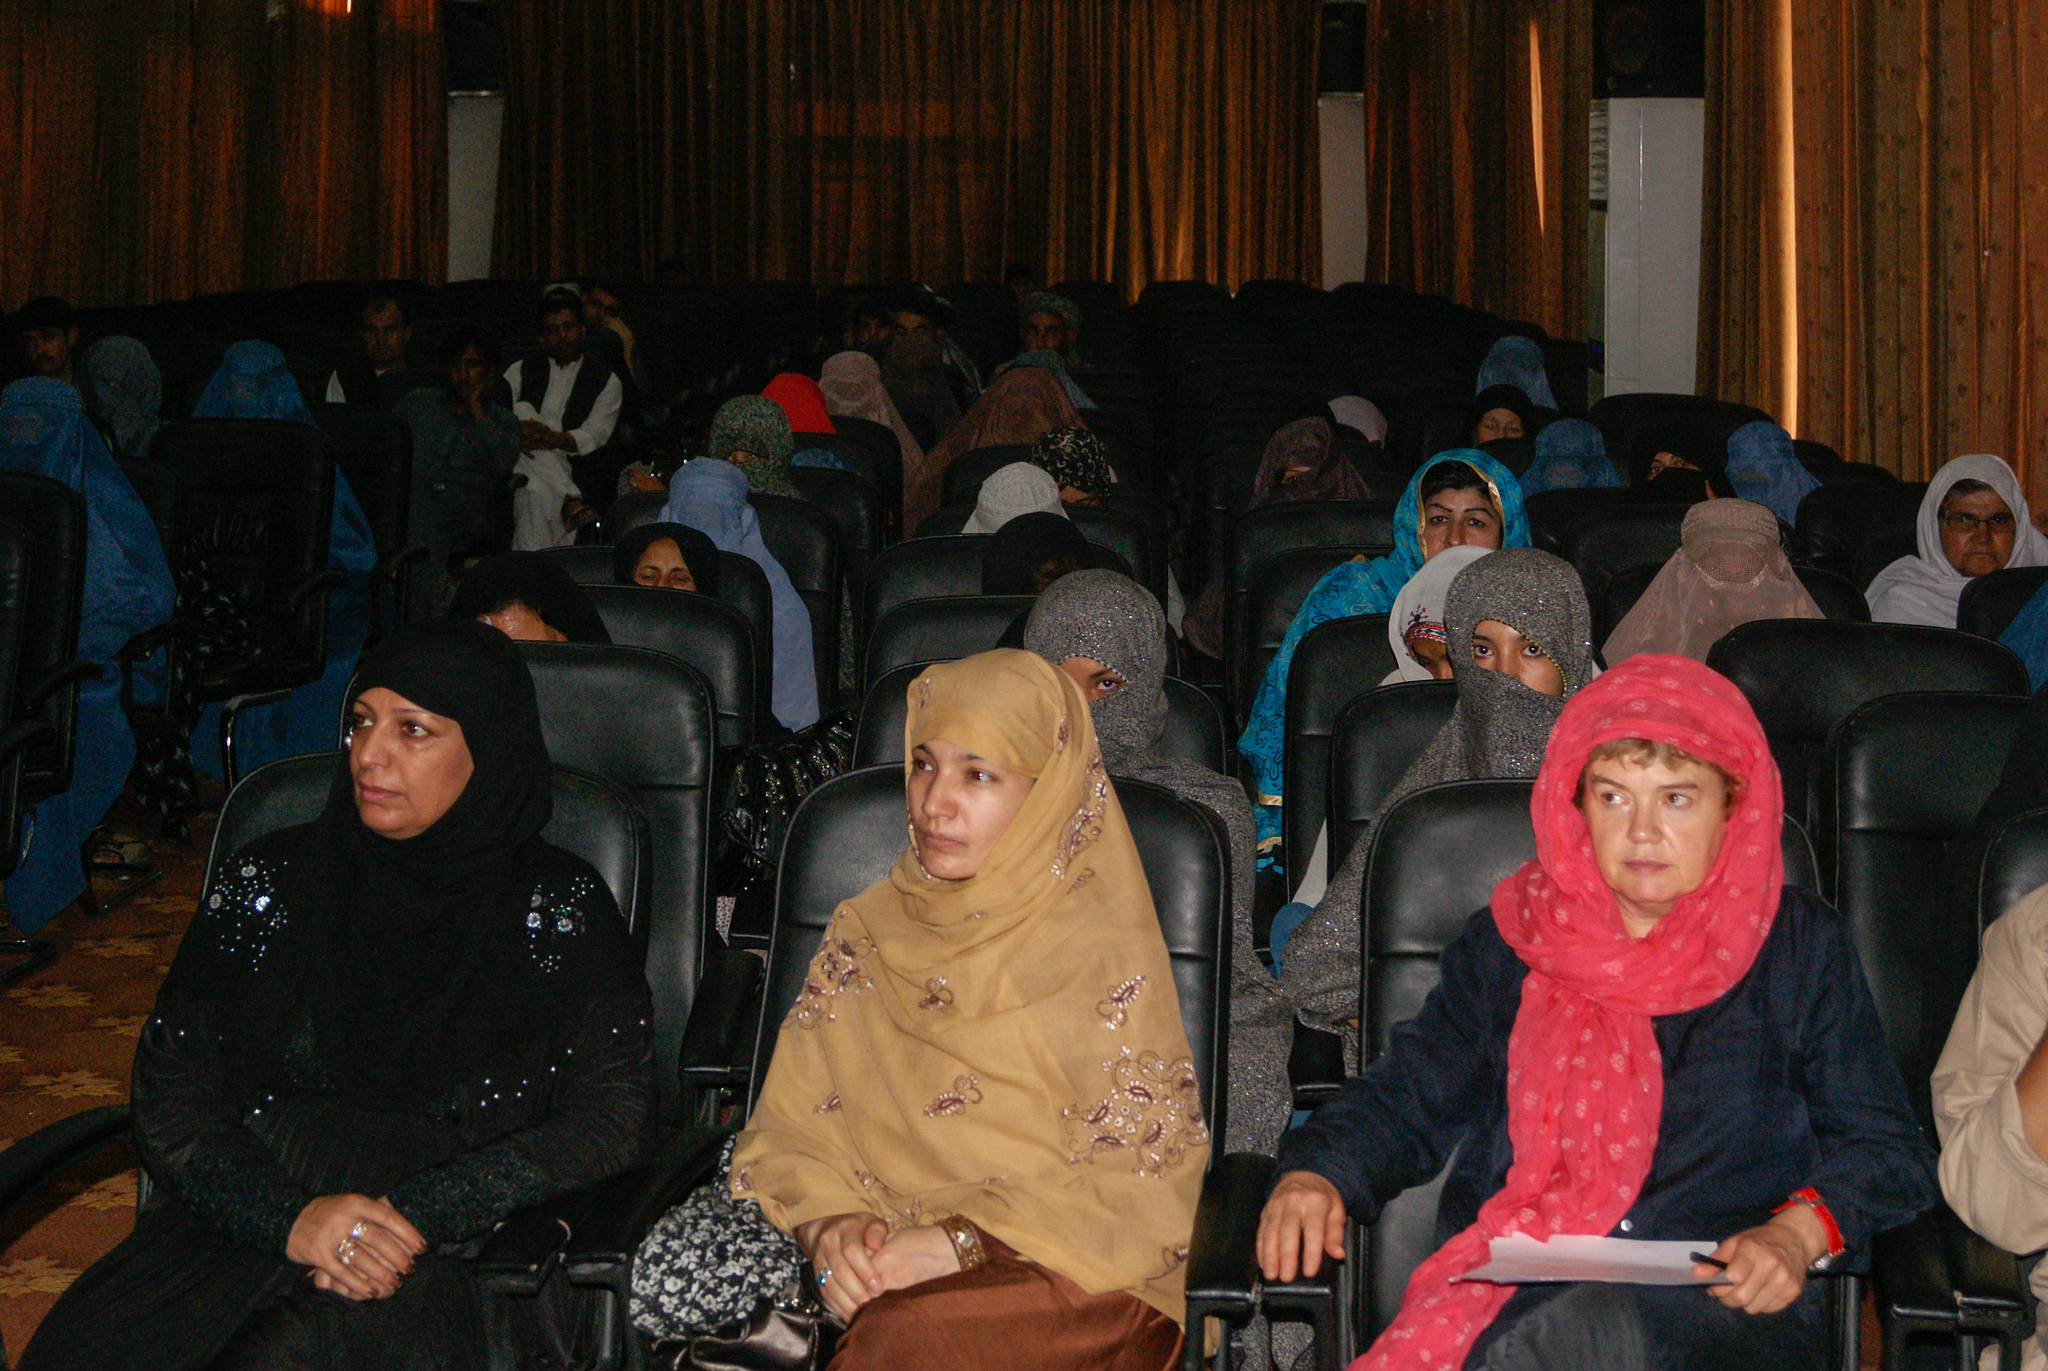 Women attend a shura on voting and running for office in Helmand, Afghanistan. By Helmand PRT Lashkar Gah.